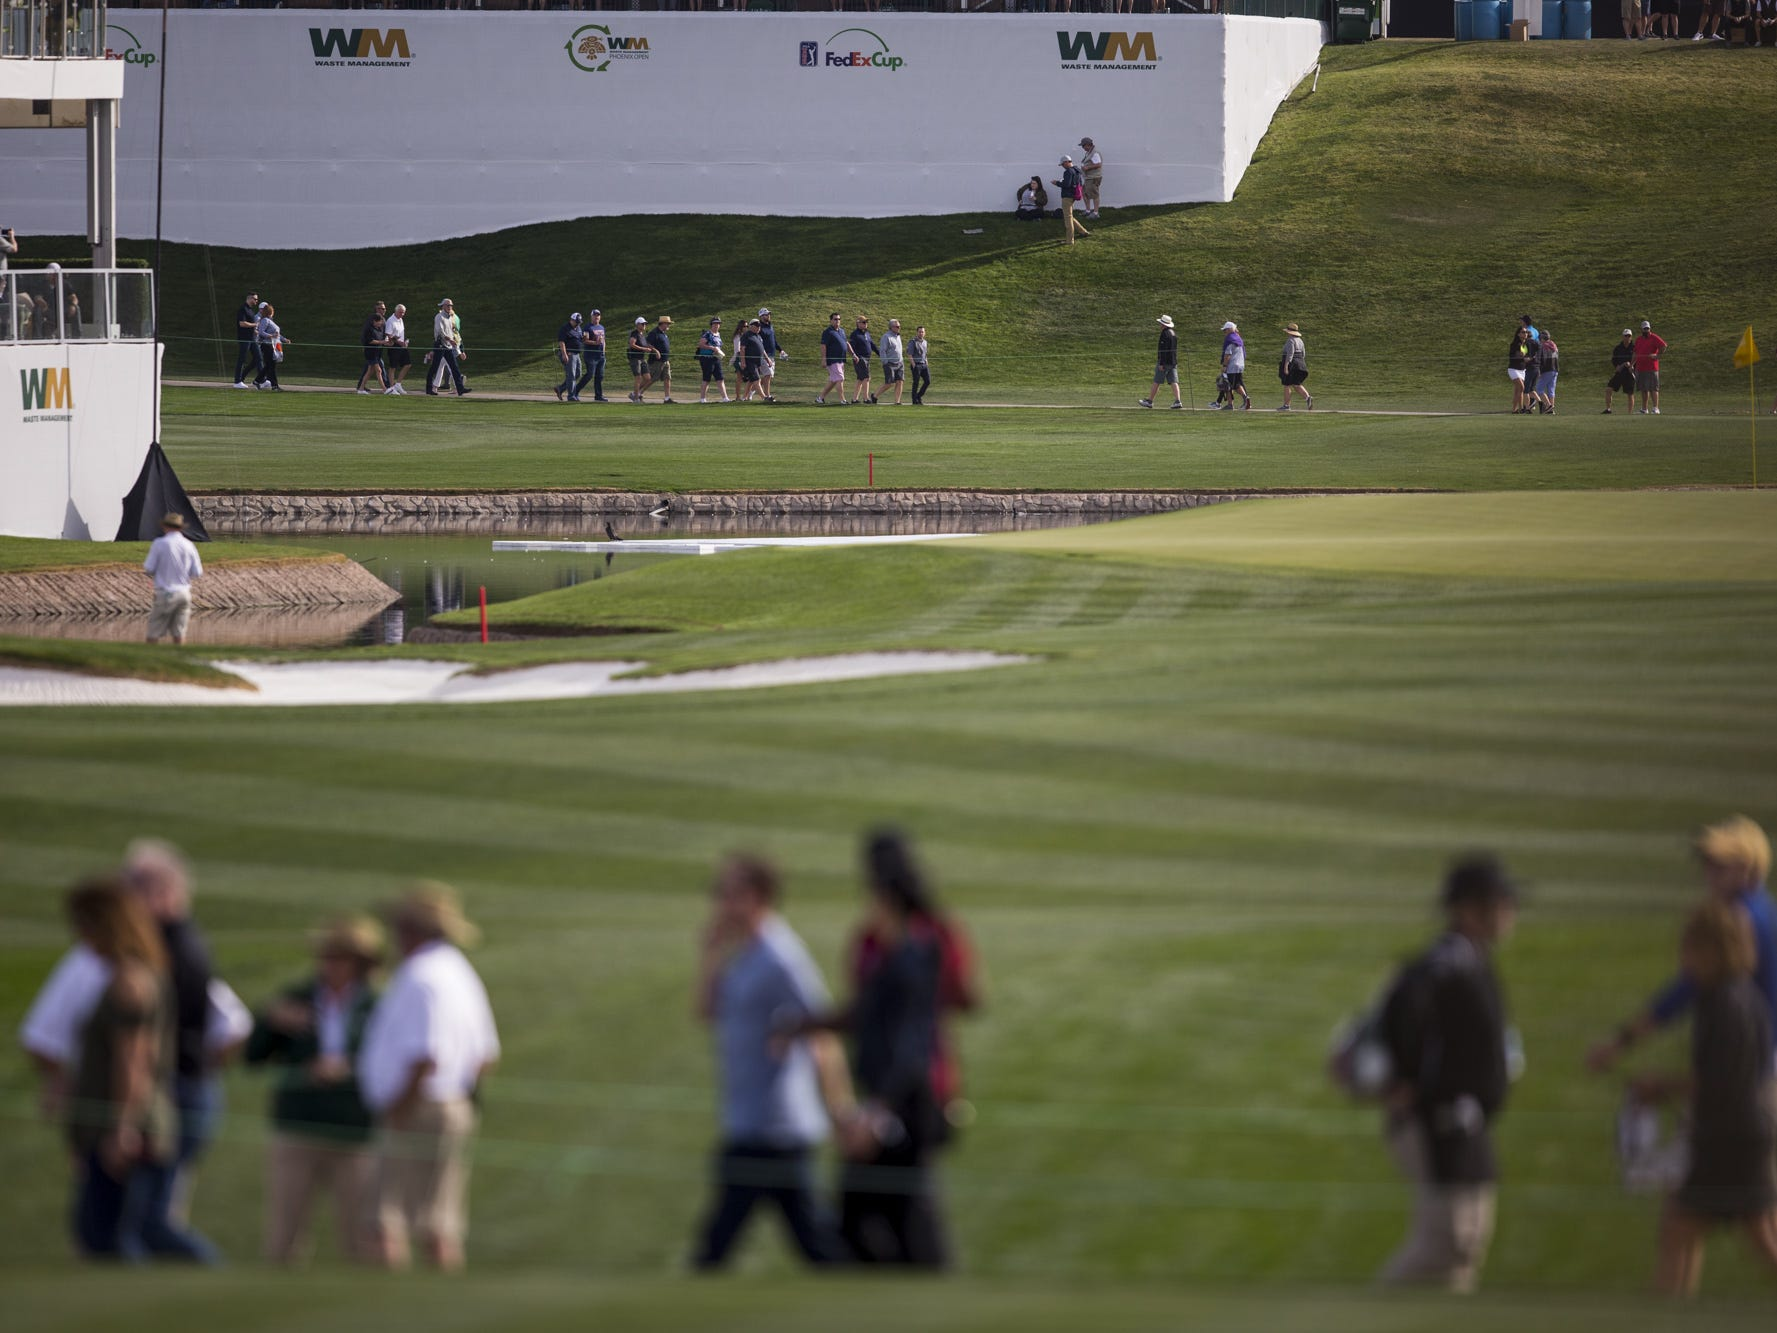 Fans walk the course during the first round of the Waste Management Phoenix Open.